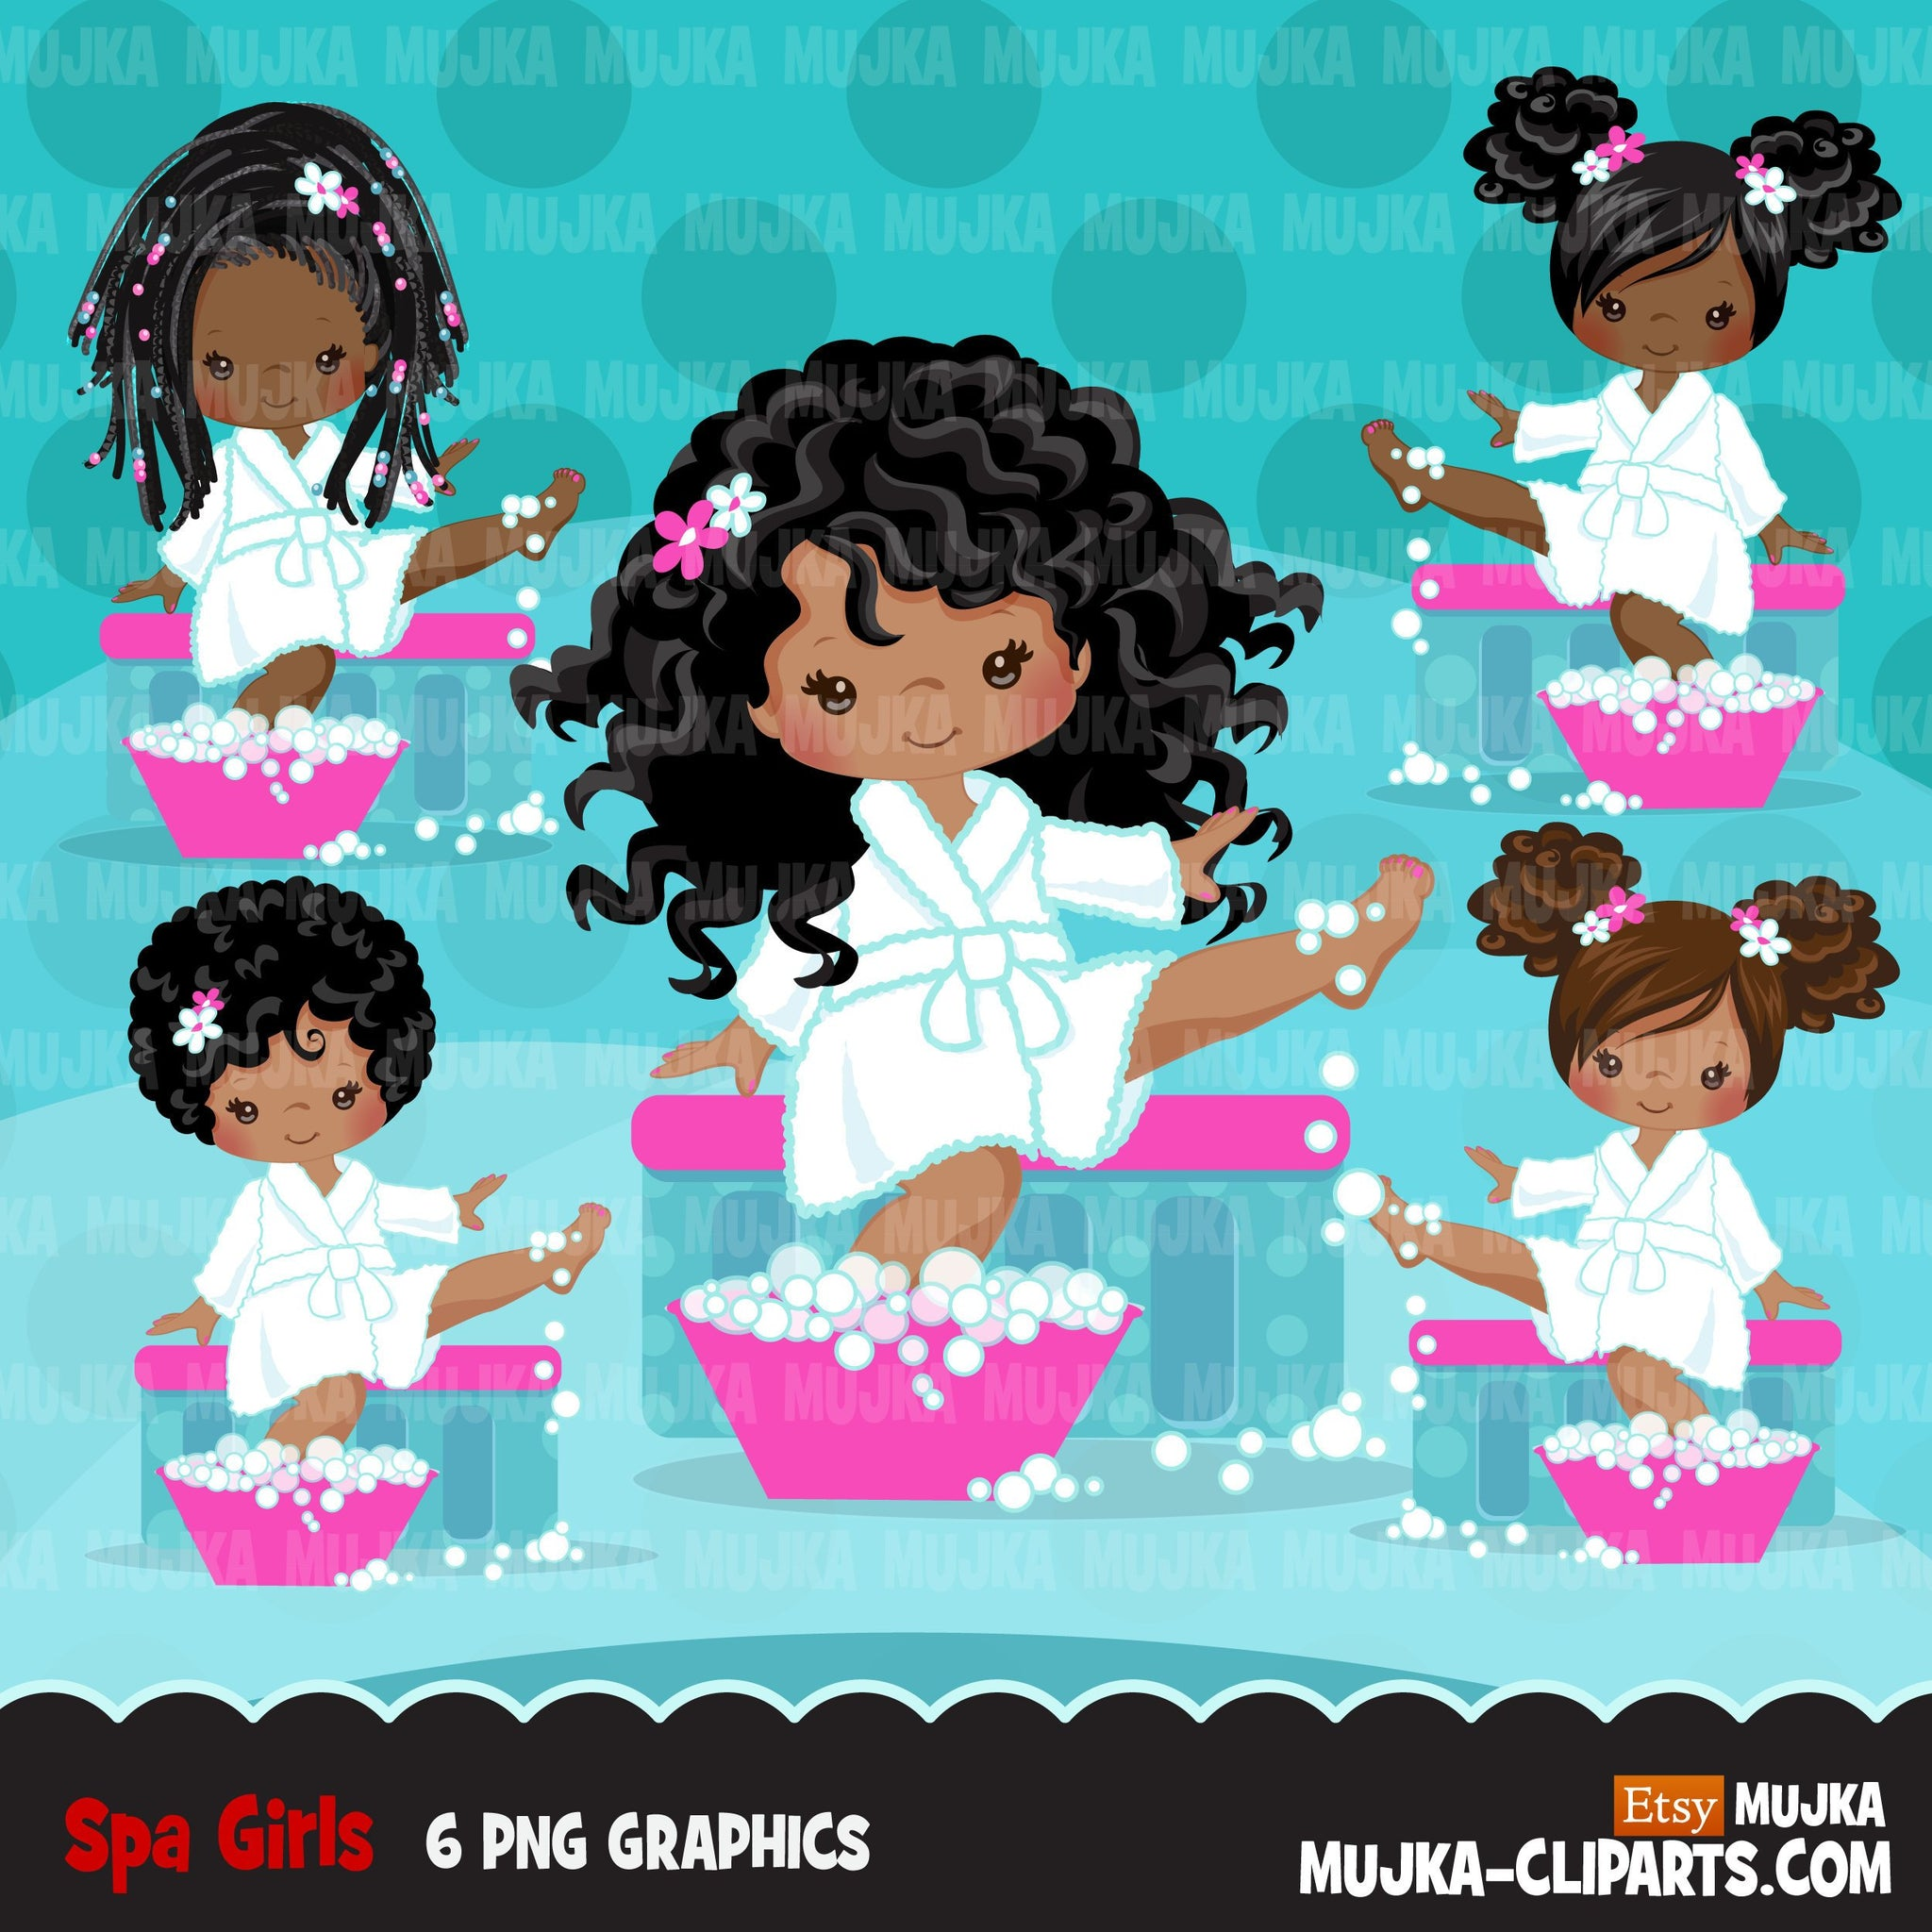 Spa clipart, party black girl graphics, bath, nail polish, spa birthday graphics, soaking feet, commercial use clip art